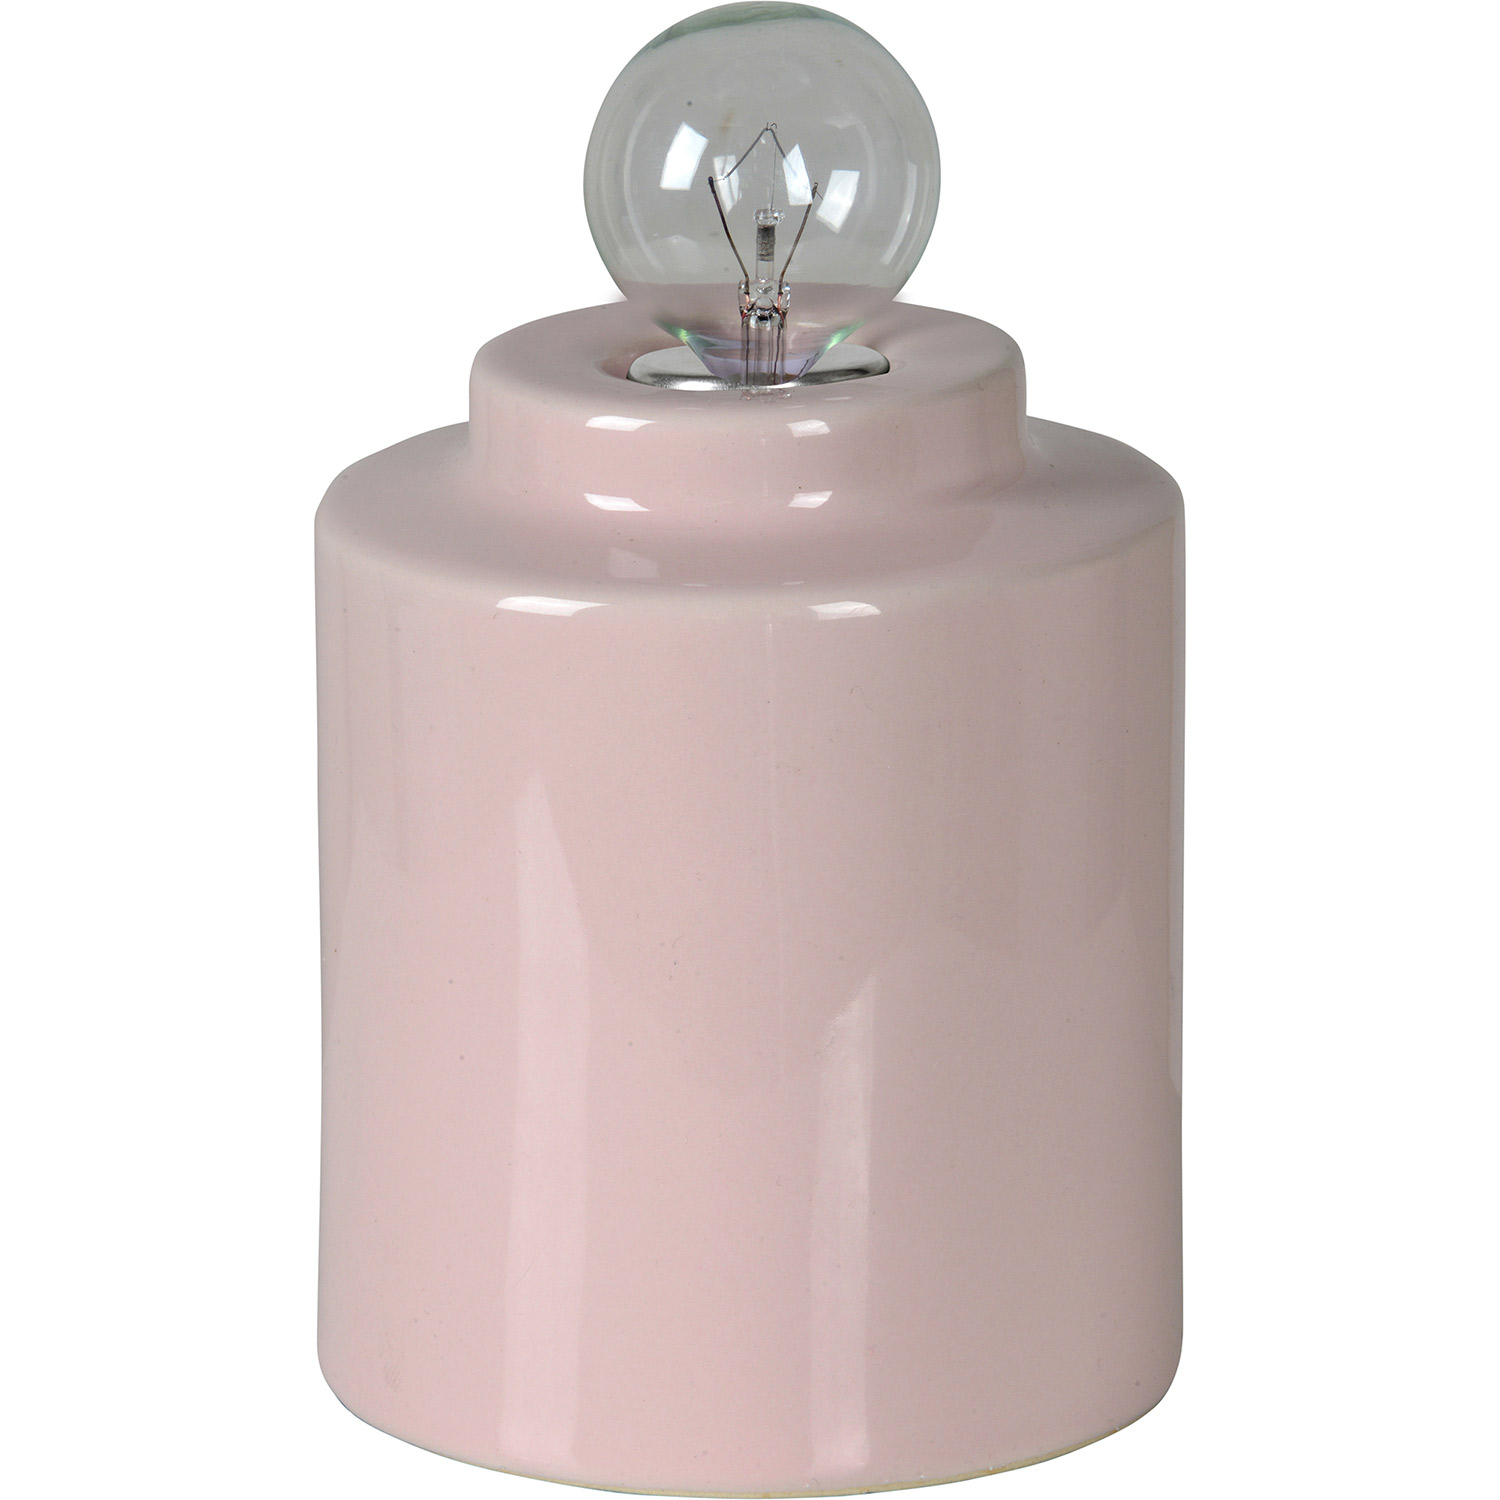 Ren-Wil Cesar Table Lamp - Pink